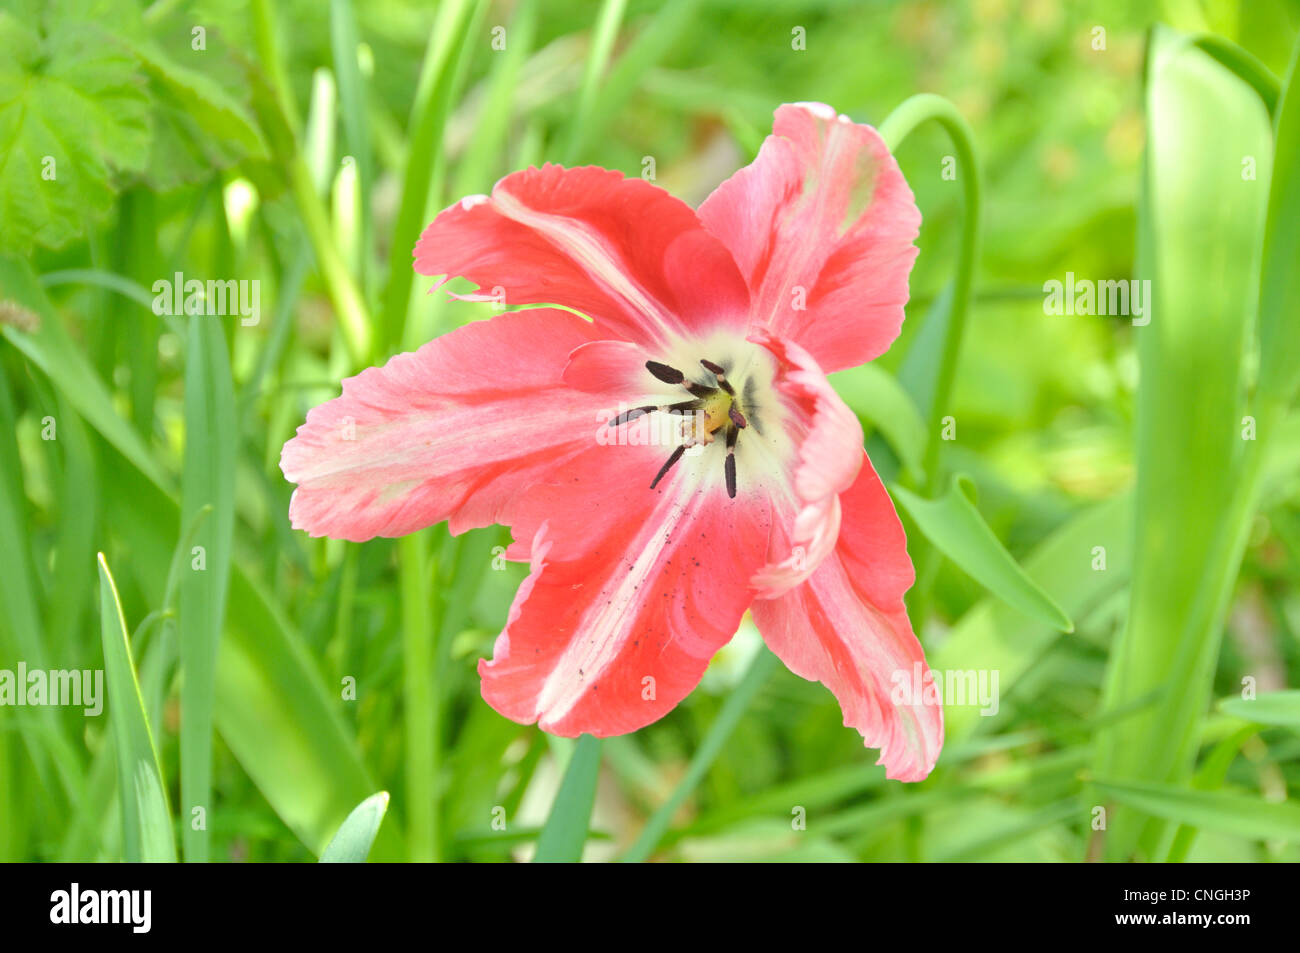 Flower of tulip at the end of maturity. - Stock Image